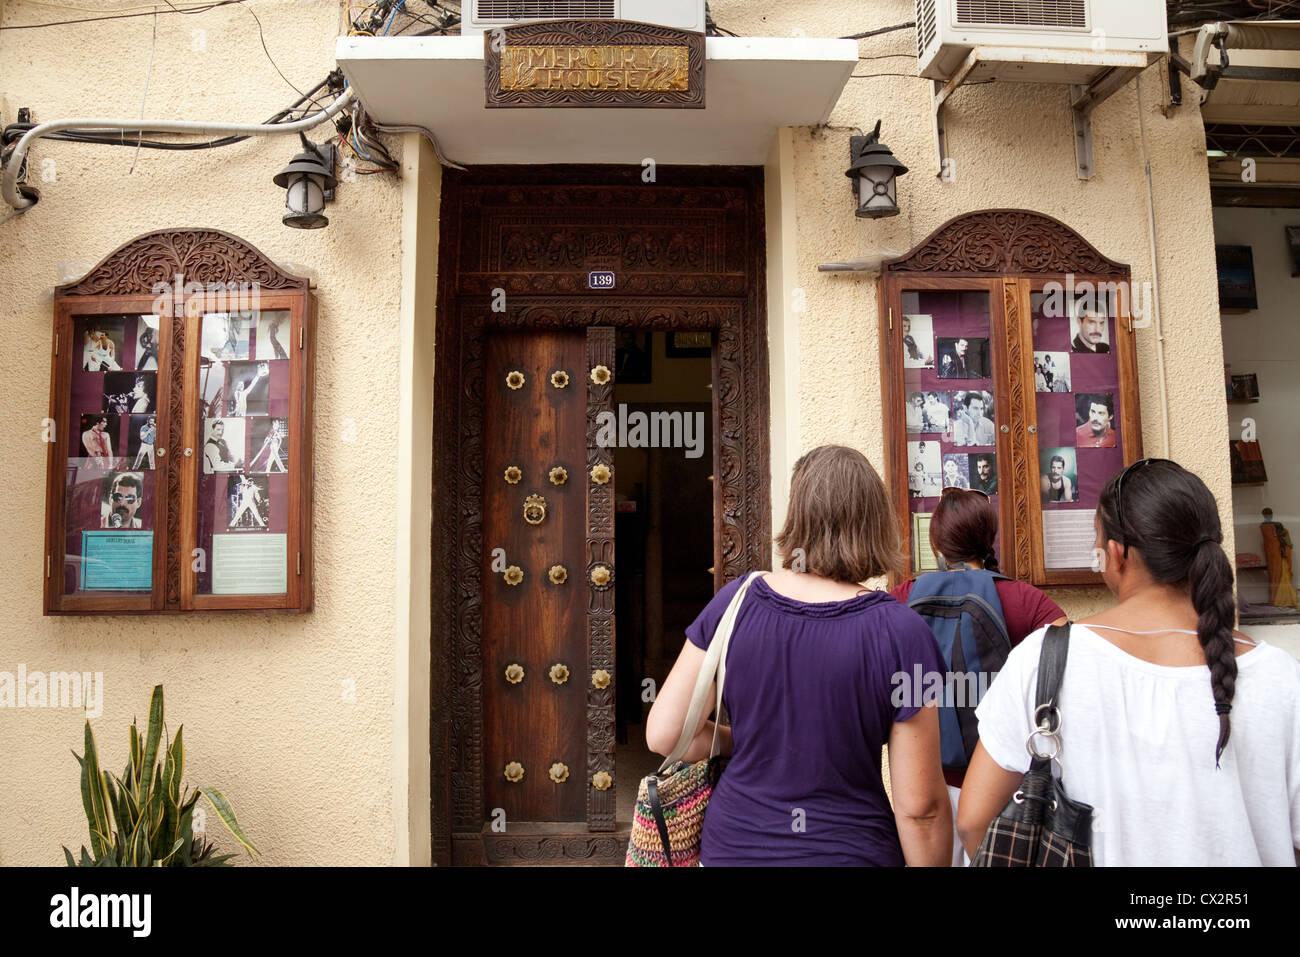 tourists-at-mercury-house-where-freddie-mercury-lived-as-a-child-stone-CX2R51.jpg